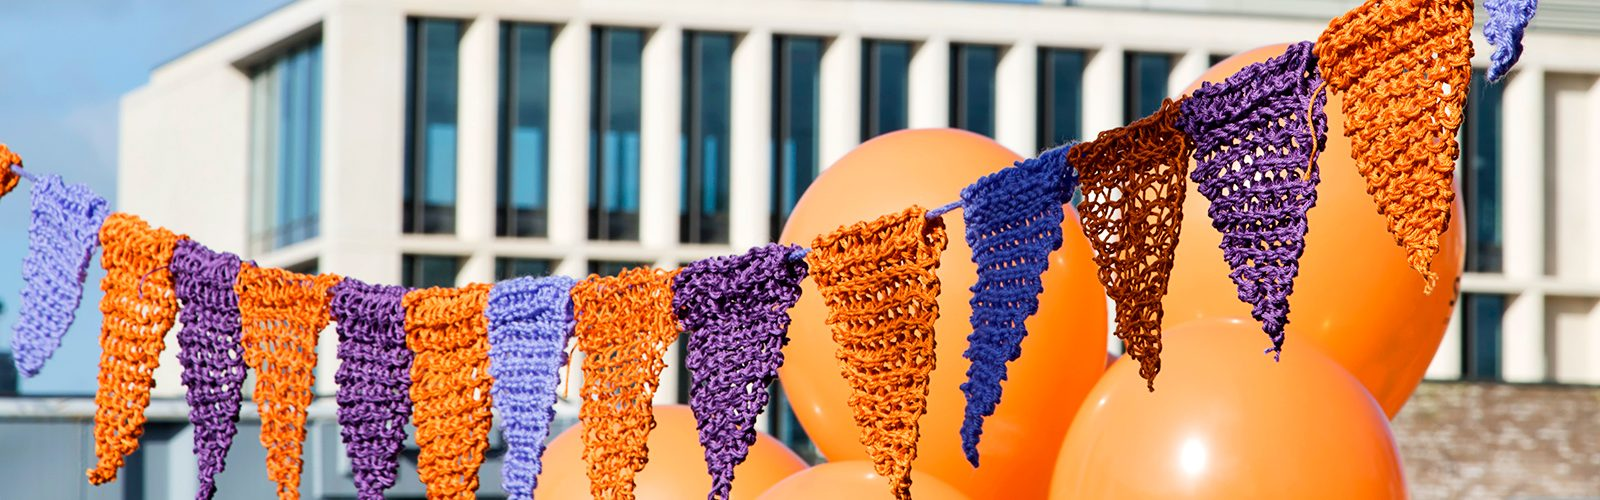 Orange and purple bunting in front of a building